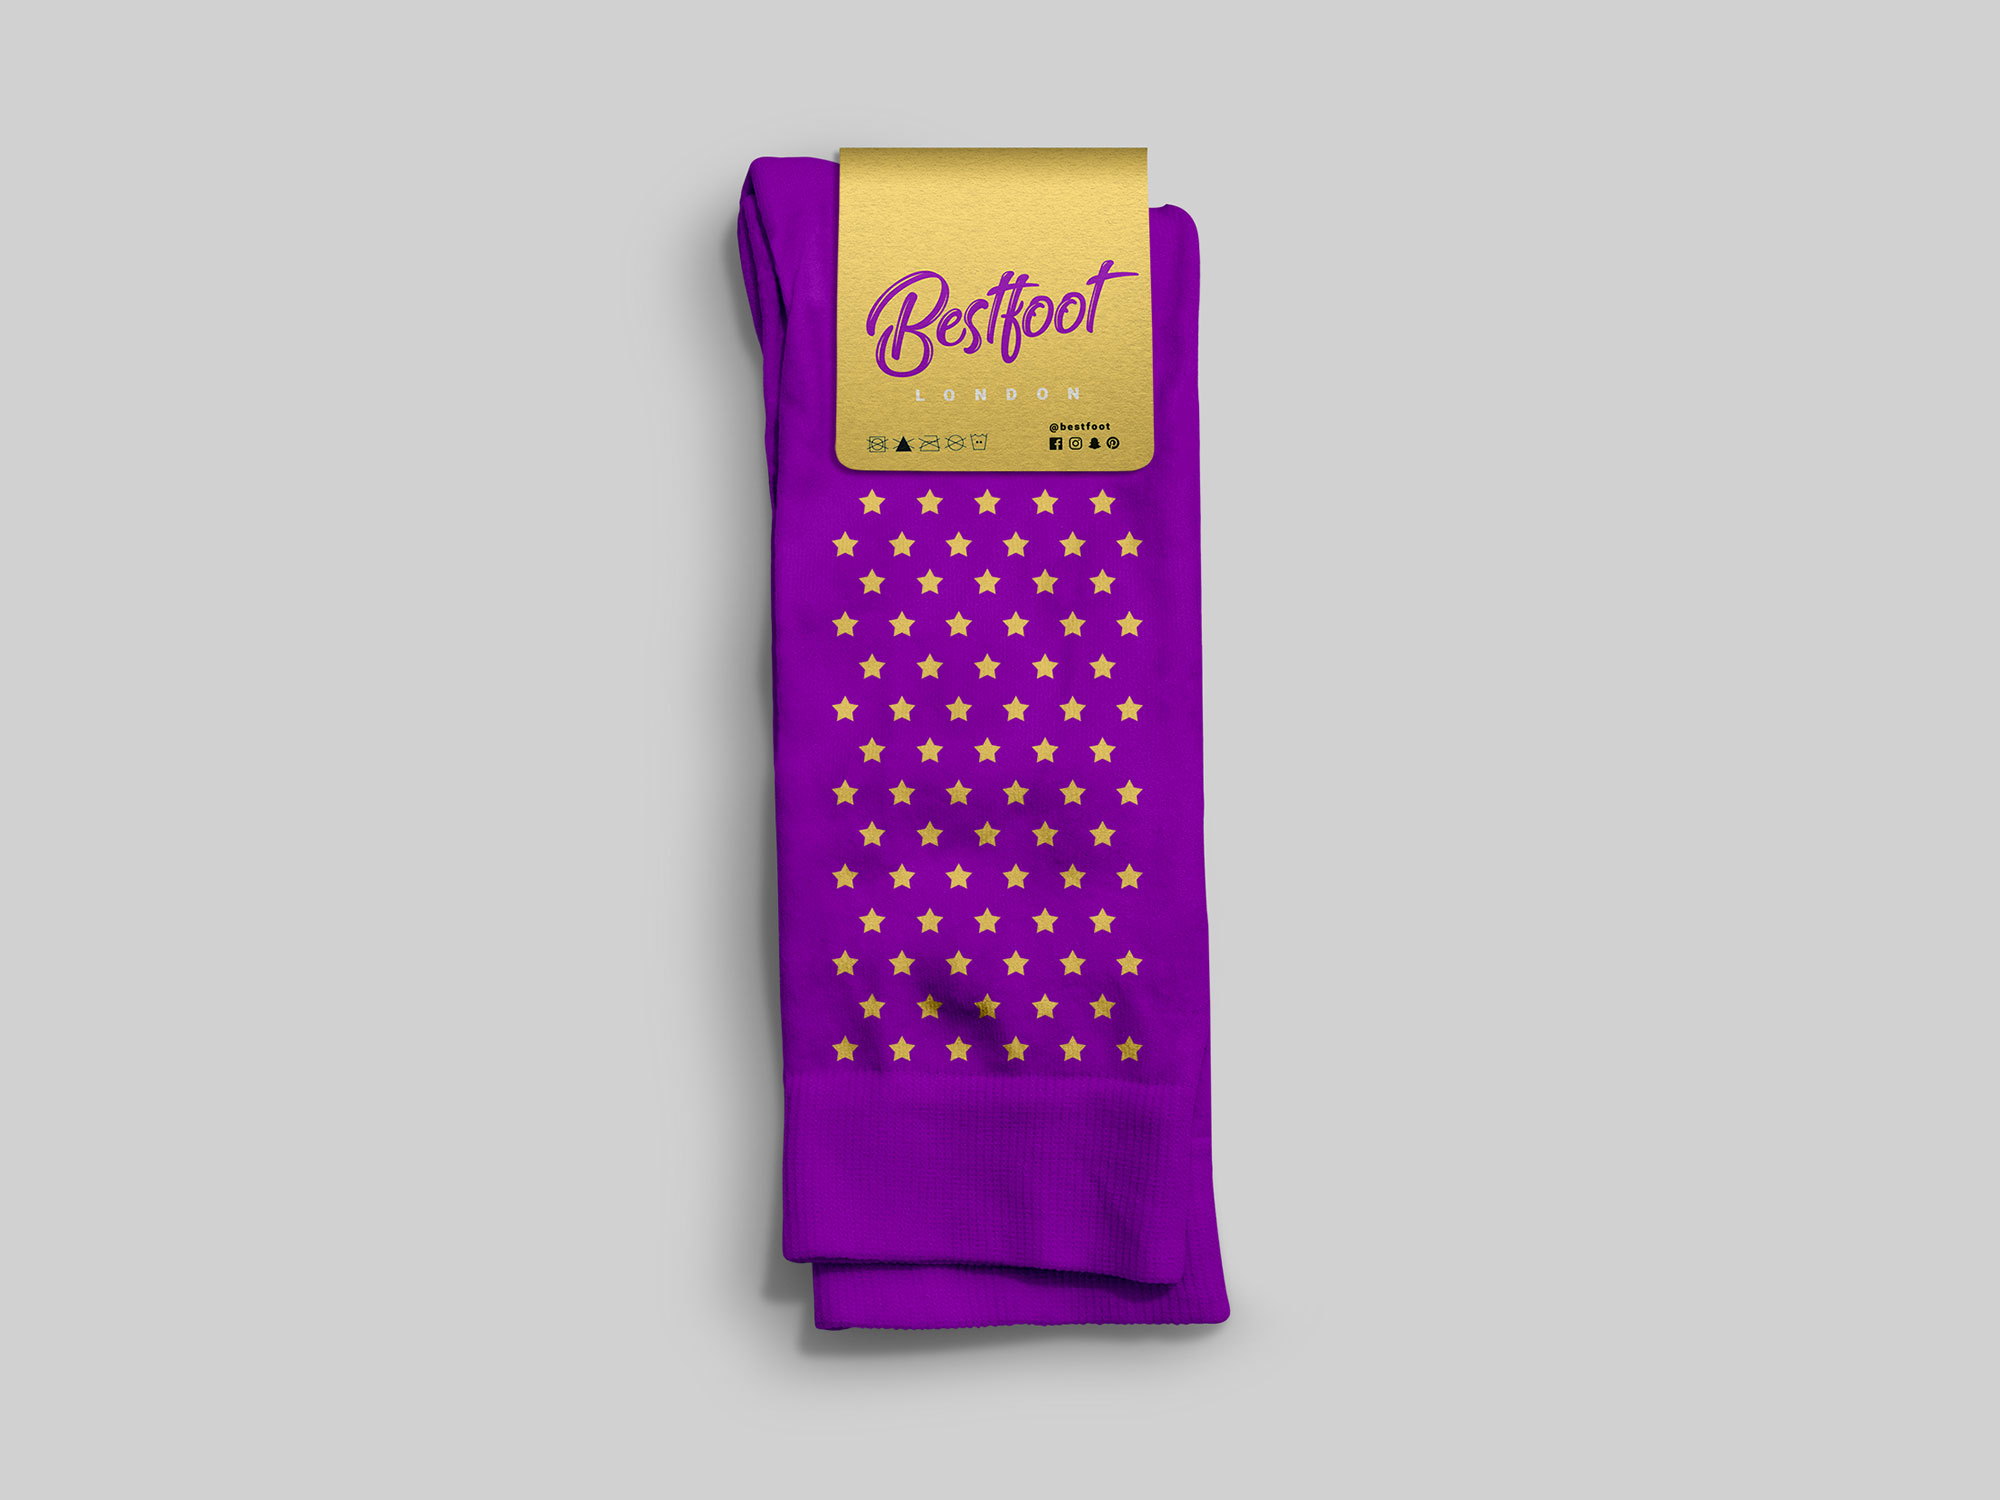 Pair of Socks Mockup